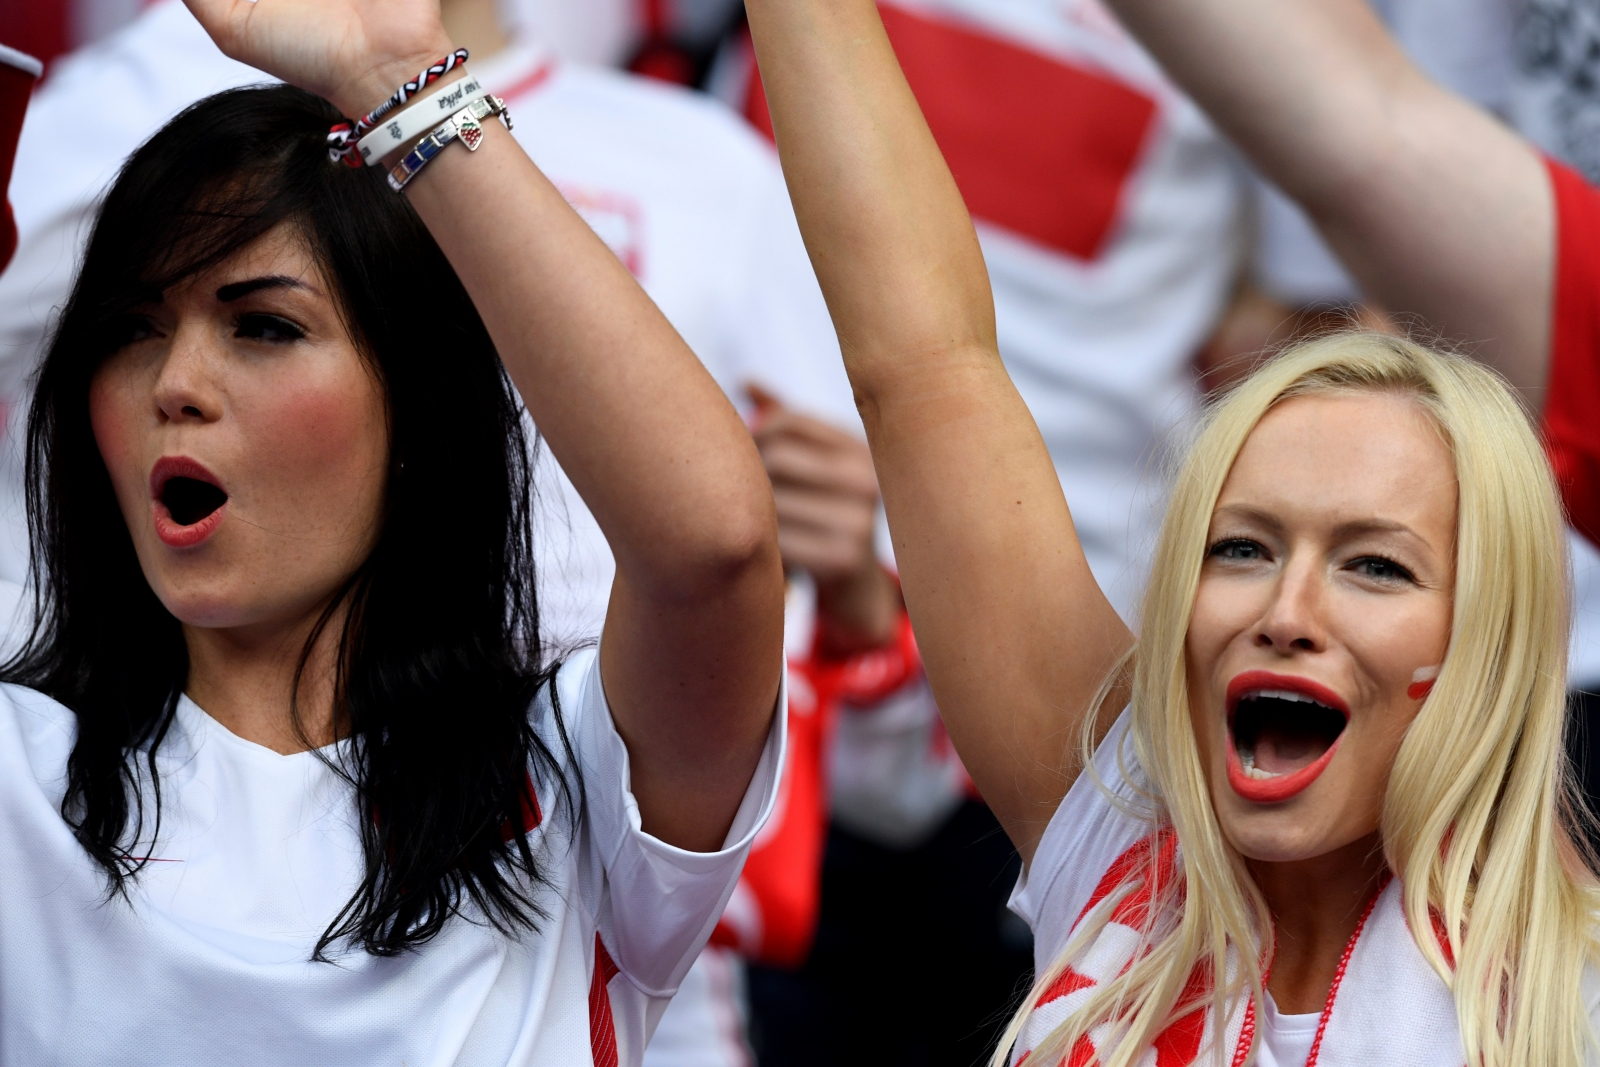 Two Polish supporters